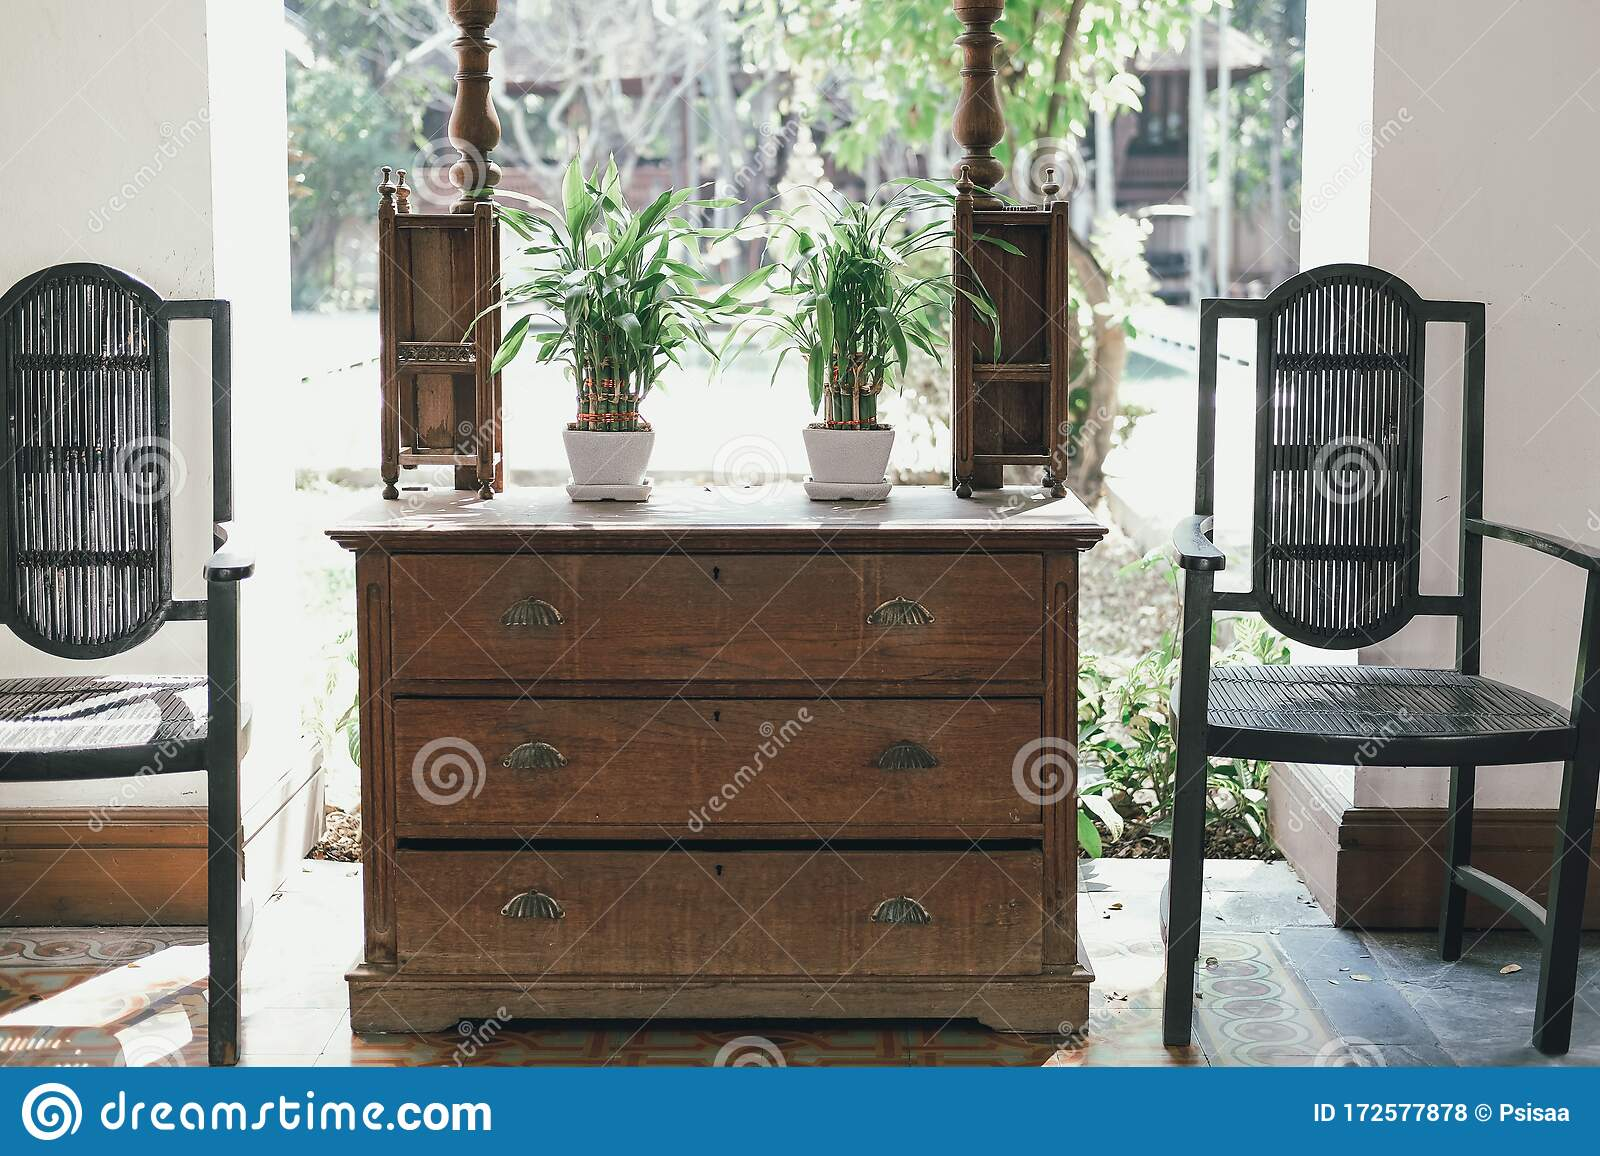 Plant Pot On Wooden Cabinet Chair In Living Room Terrace Home